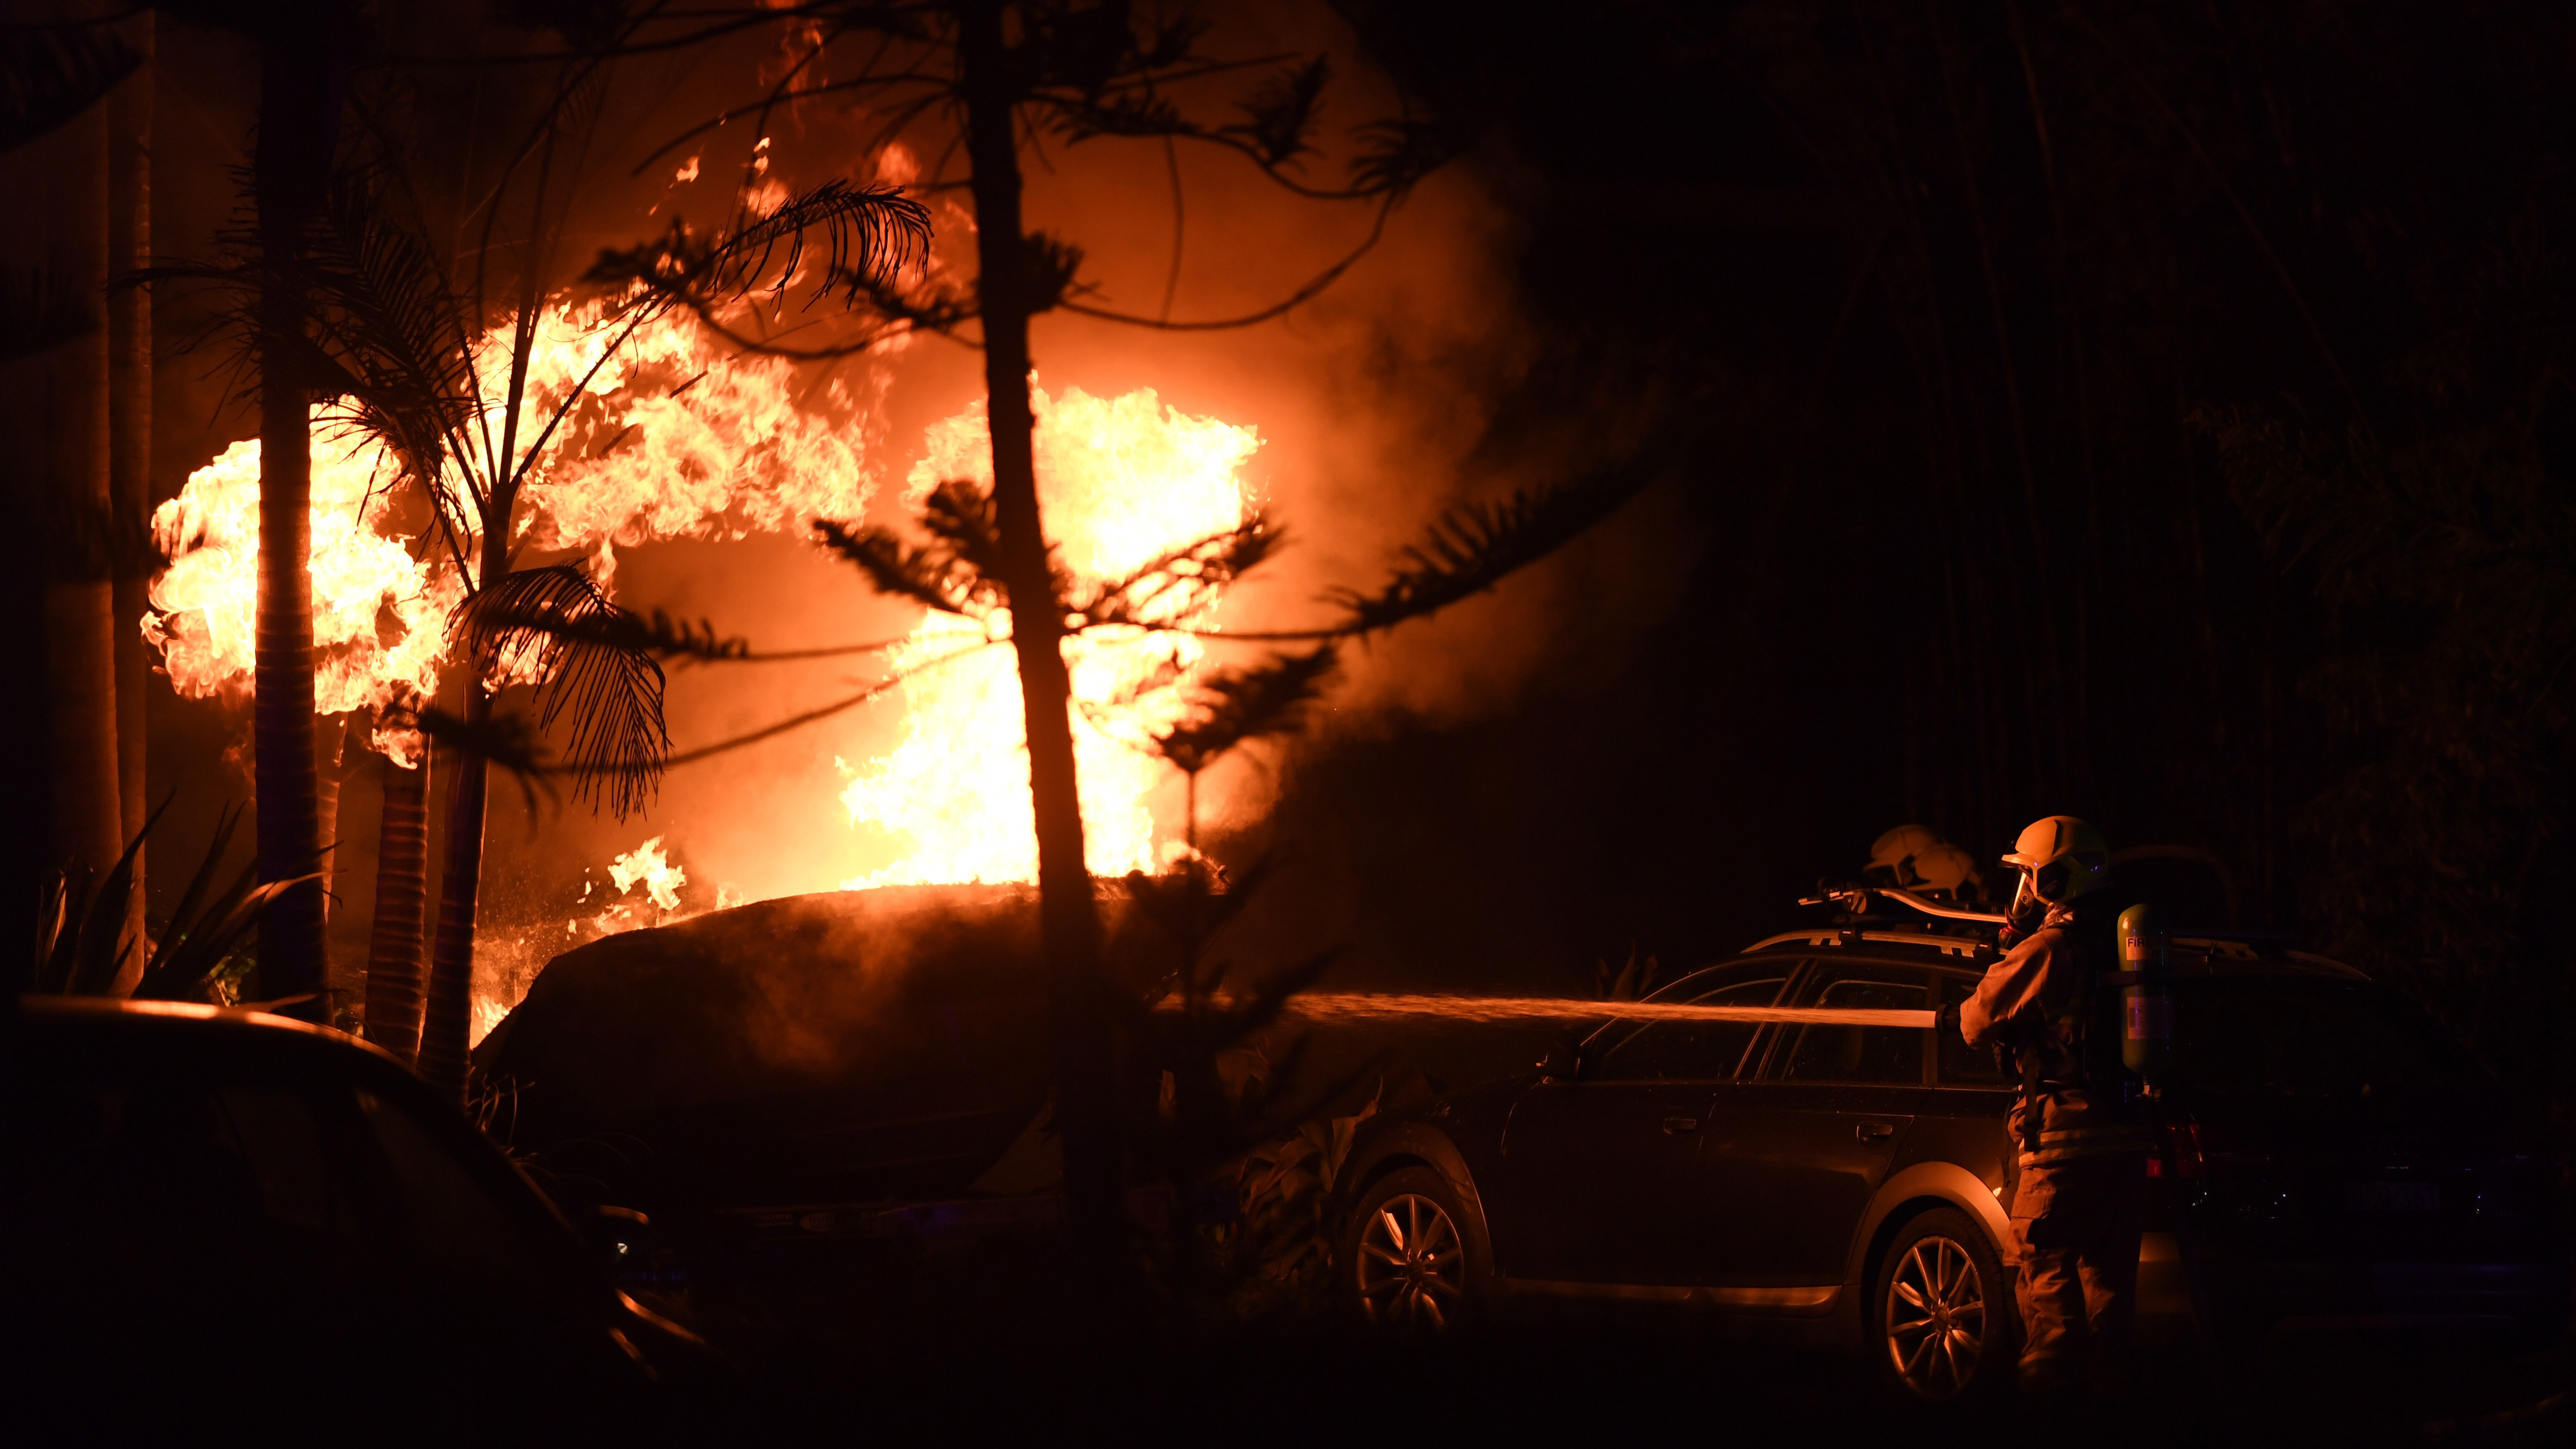 Firefighters faced strong westerly gusts as they attempted to battle the blaze. (AAP)